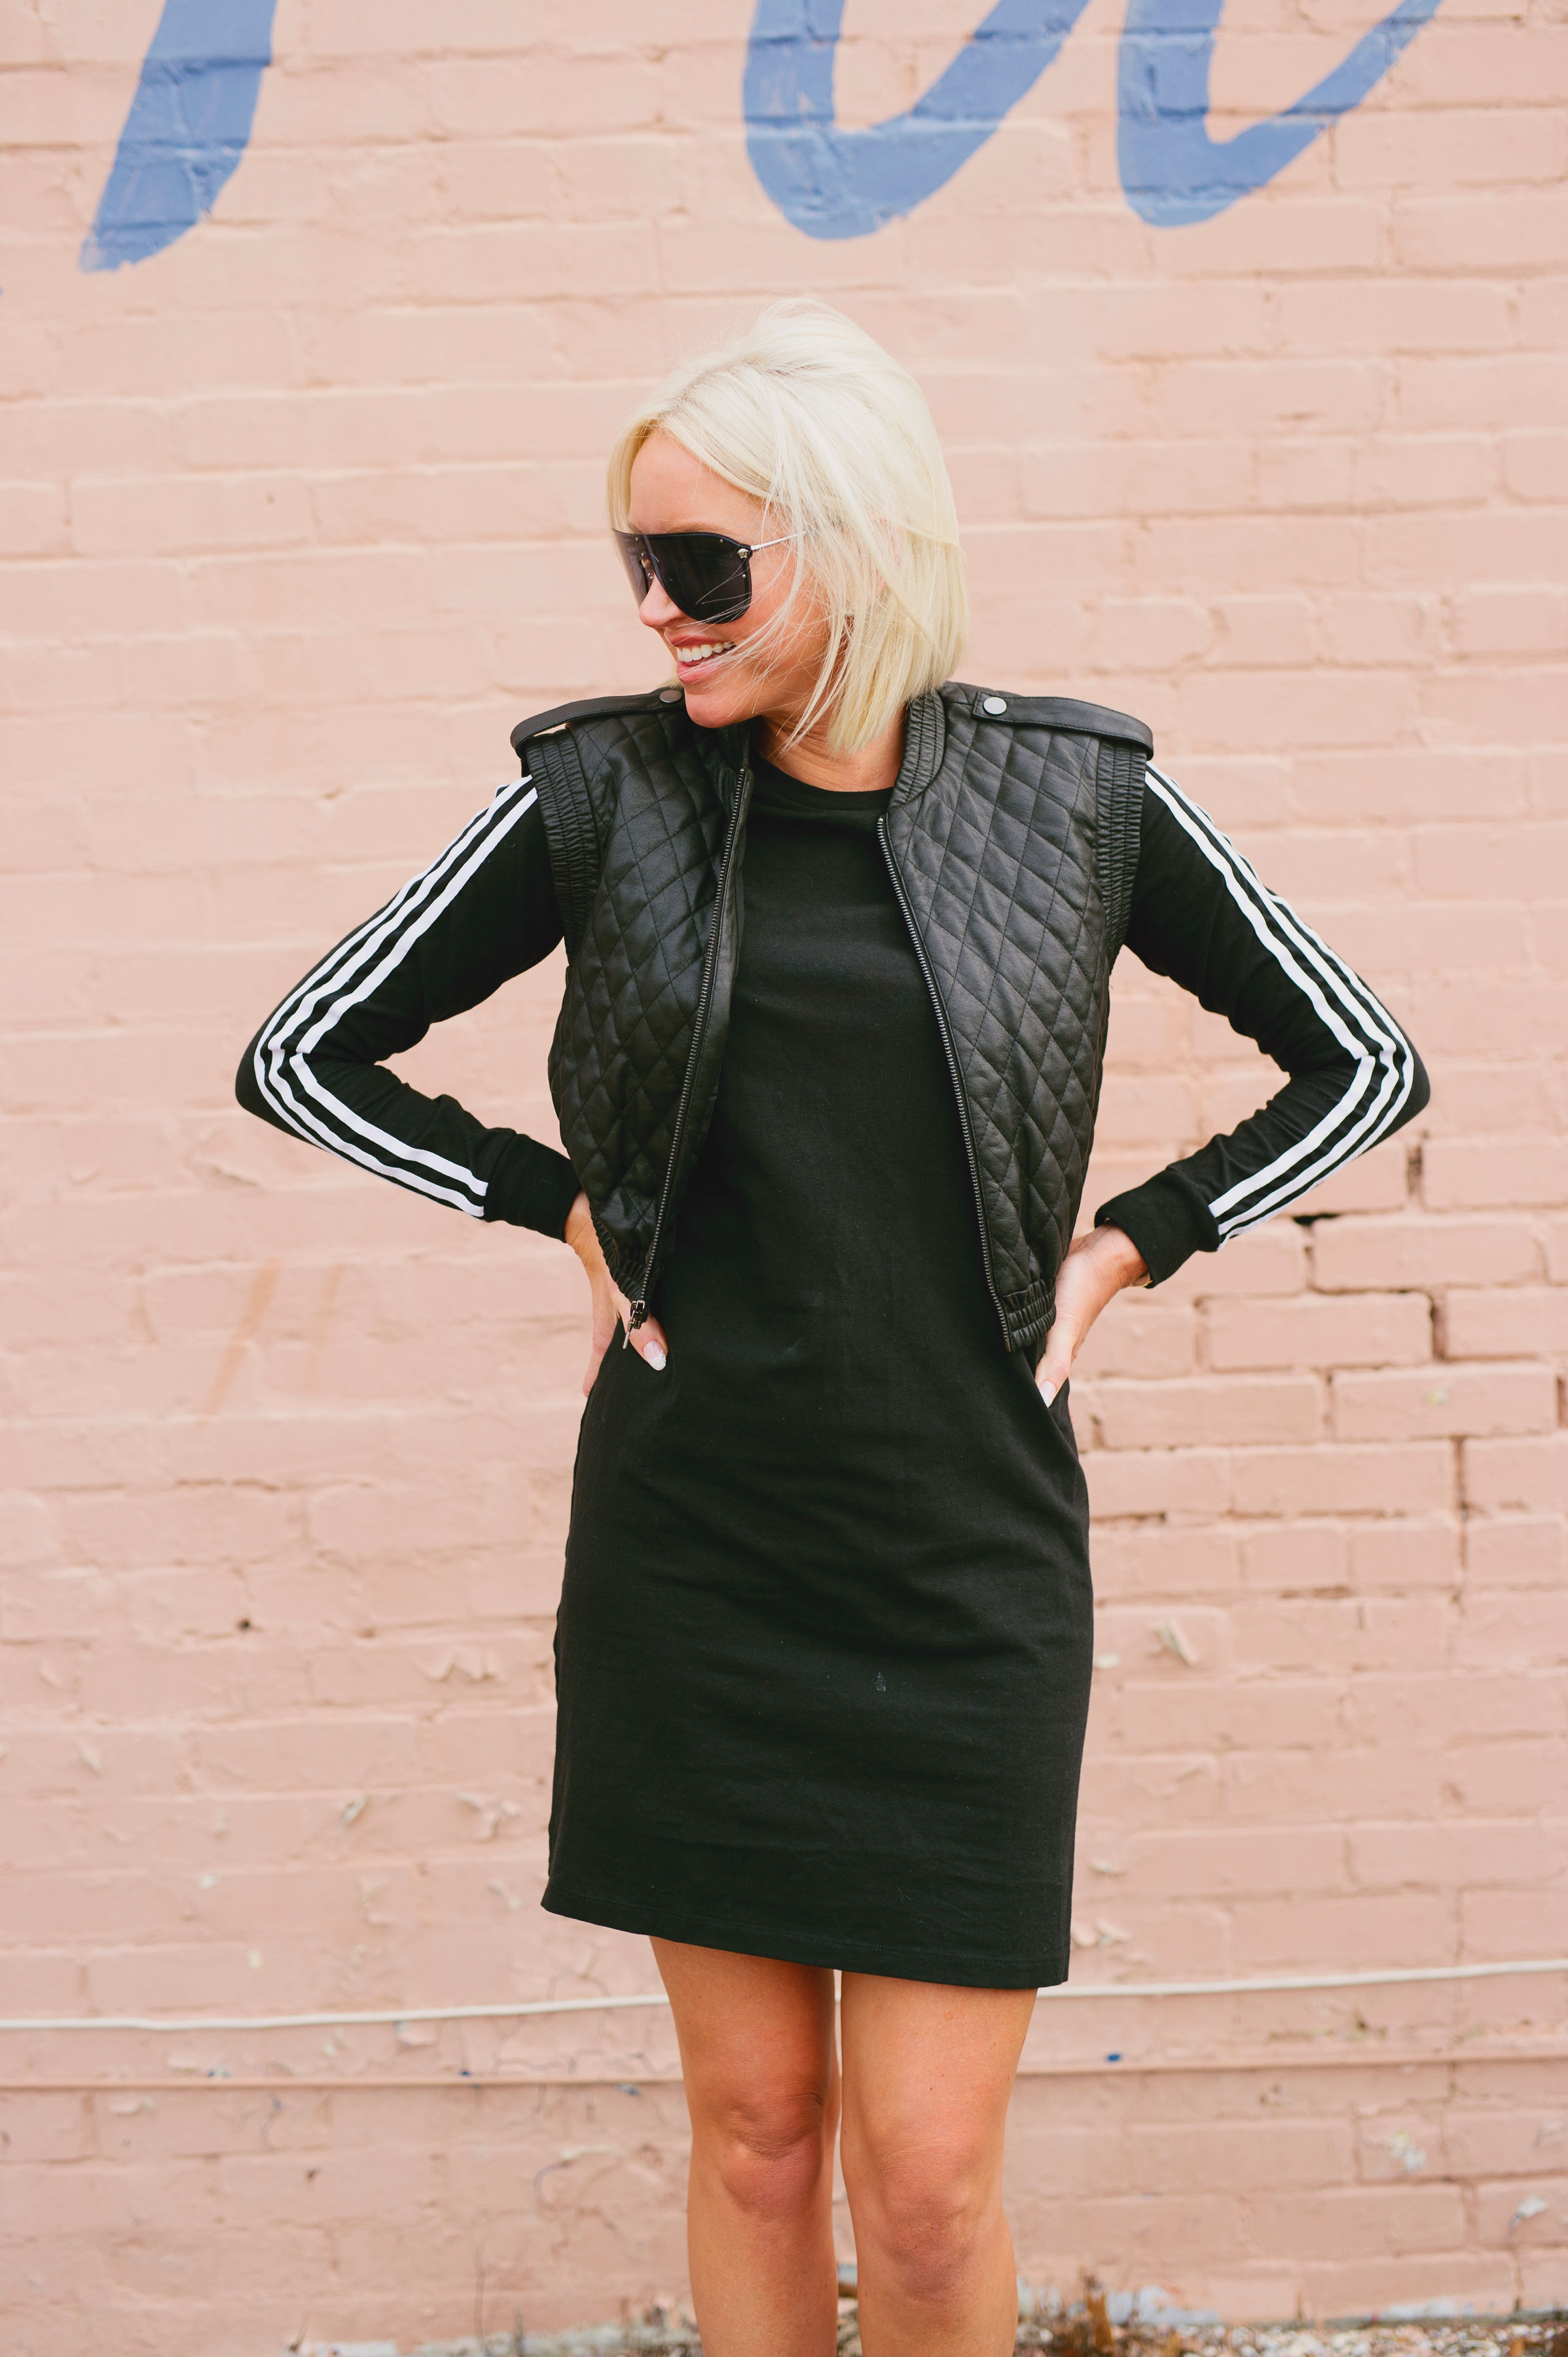 Now when I look at an Adidas dress in my closet, I know exactly how I want to style it! - However, that day in the fitting room at DICK'S -ok maybe I was shouting it through the computer that time- I was stumped on if it was a lewk I could pull off.